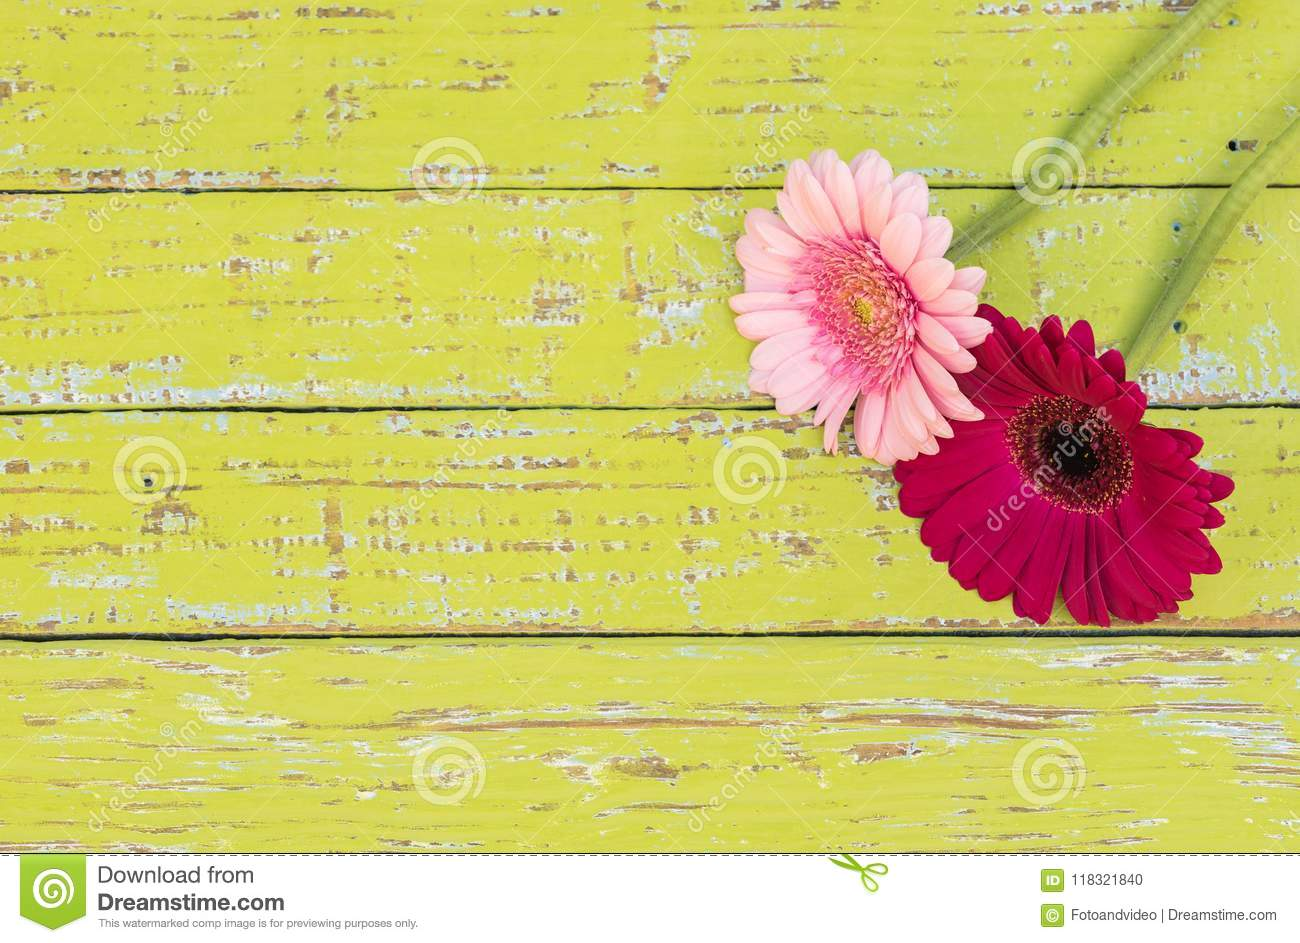 Gerbera daisy flower greeting card background for mothers or womans day at vintage style.